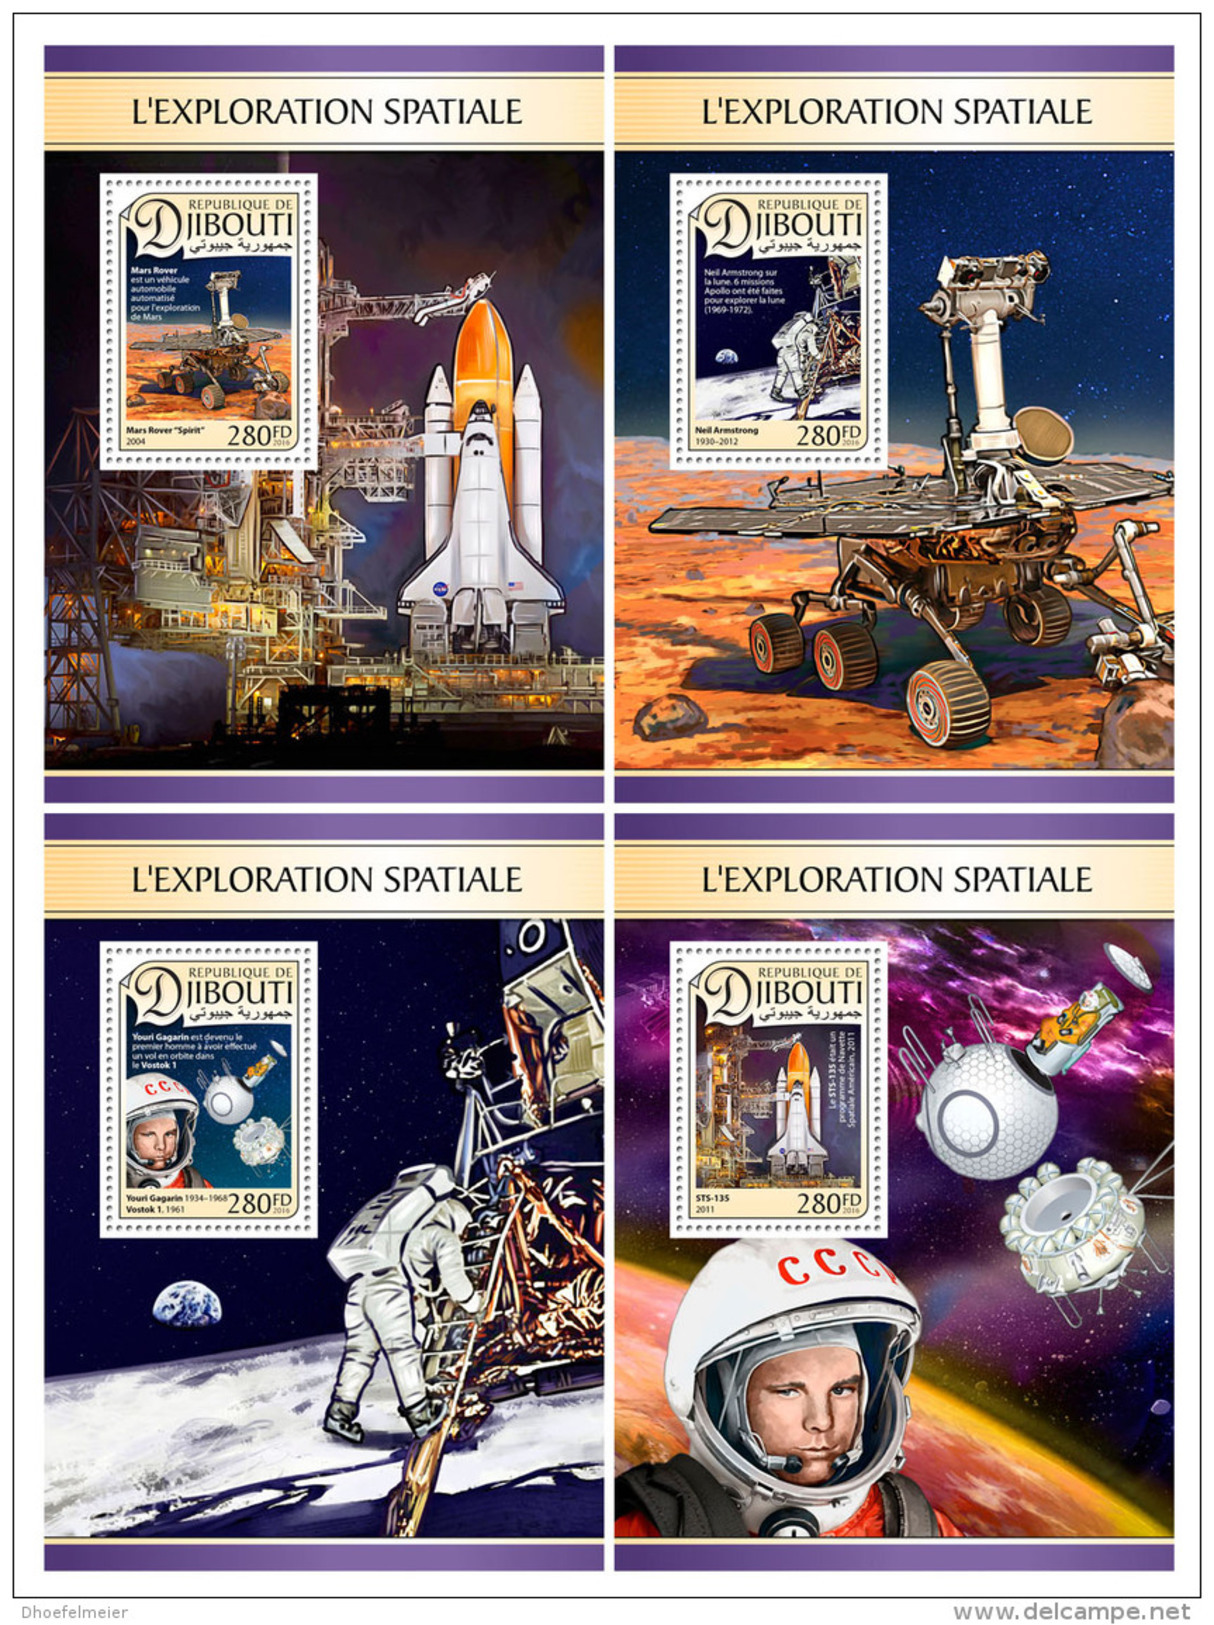 DJIBOUTI 2016 ** Space Explorations Weltraumforschung Exploration Spatiale 4S/S - OFFICIAL ISSUE - DH1726 - Africa